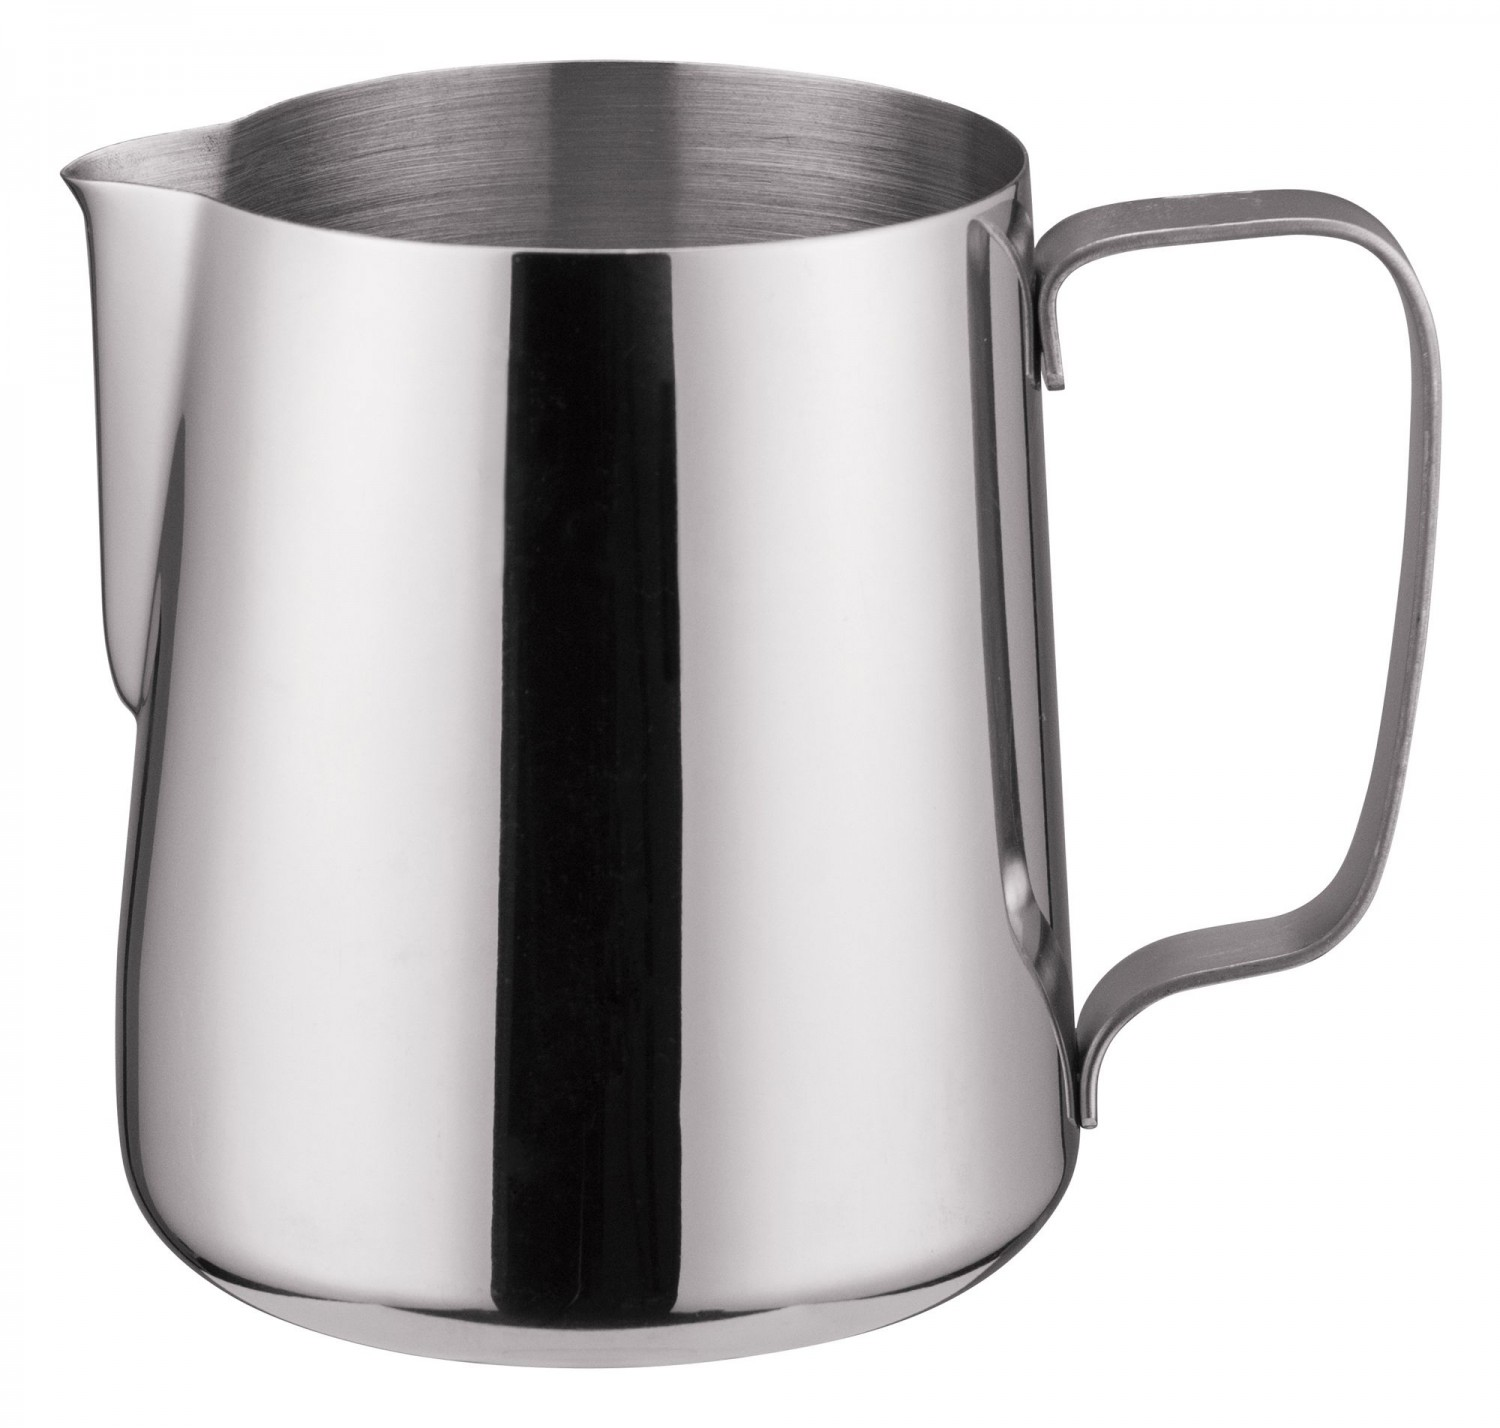 Winco WP-33 Stainless Steel Frothing Pitcher 33 oz.